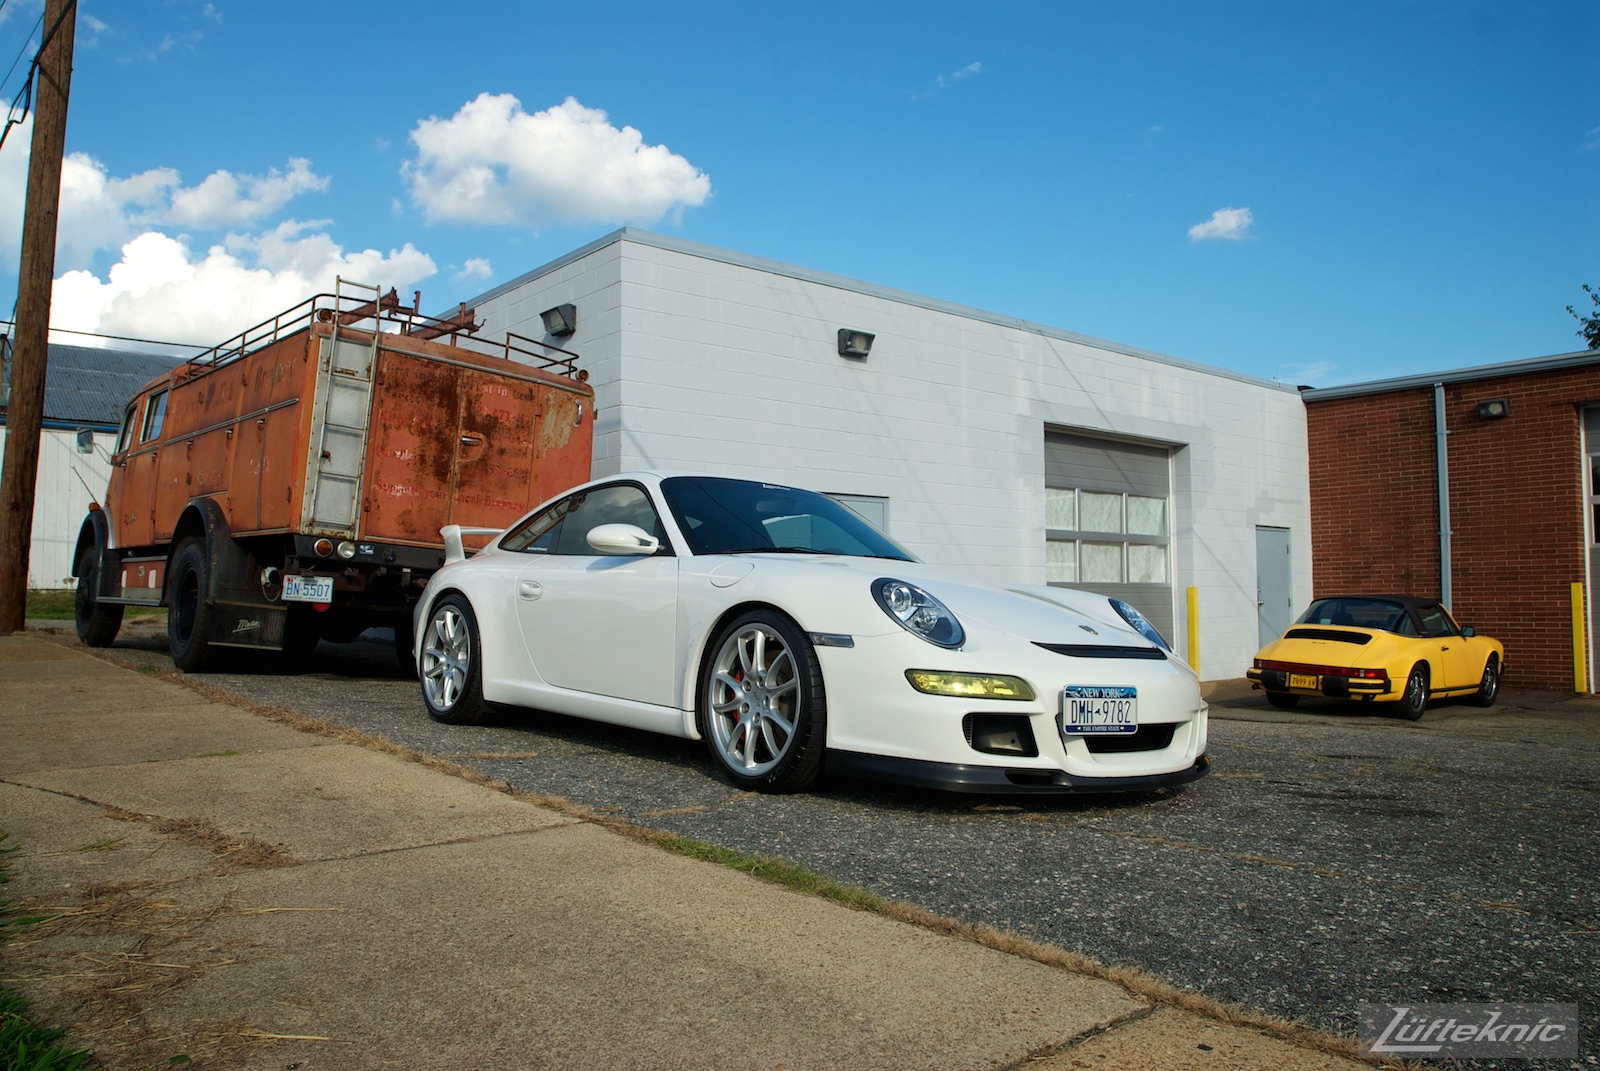 A white Porsche Gt3 poses with the Lufteknic fire truck in the parking lot, with an old yellow 911 Targa in the background.